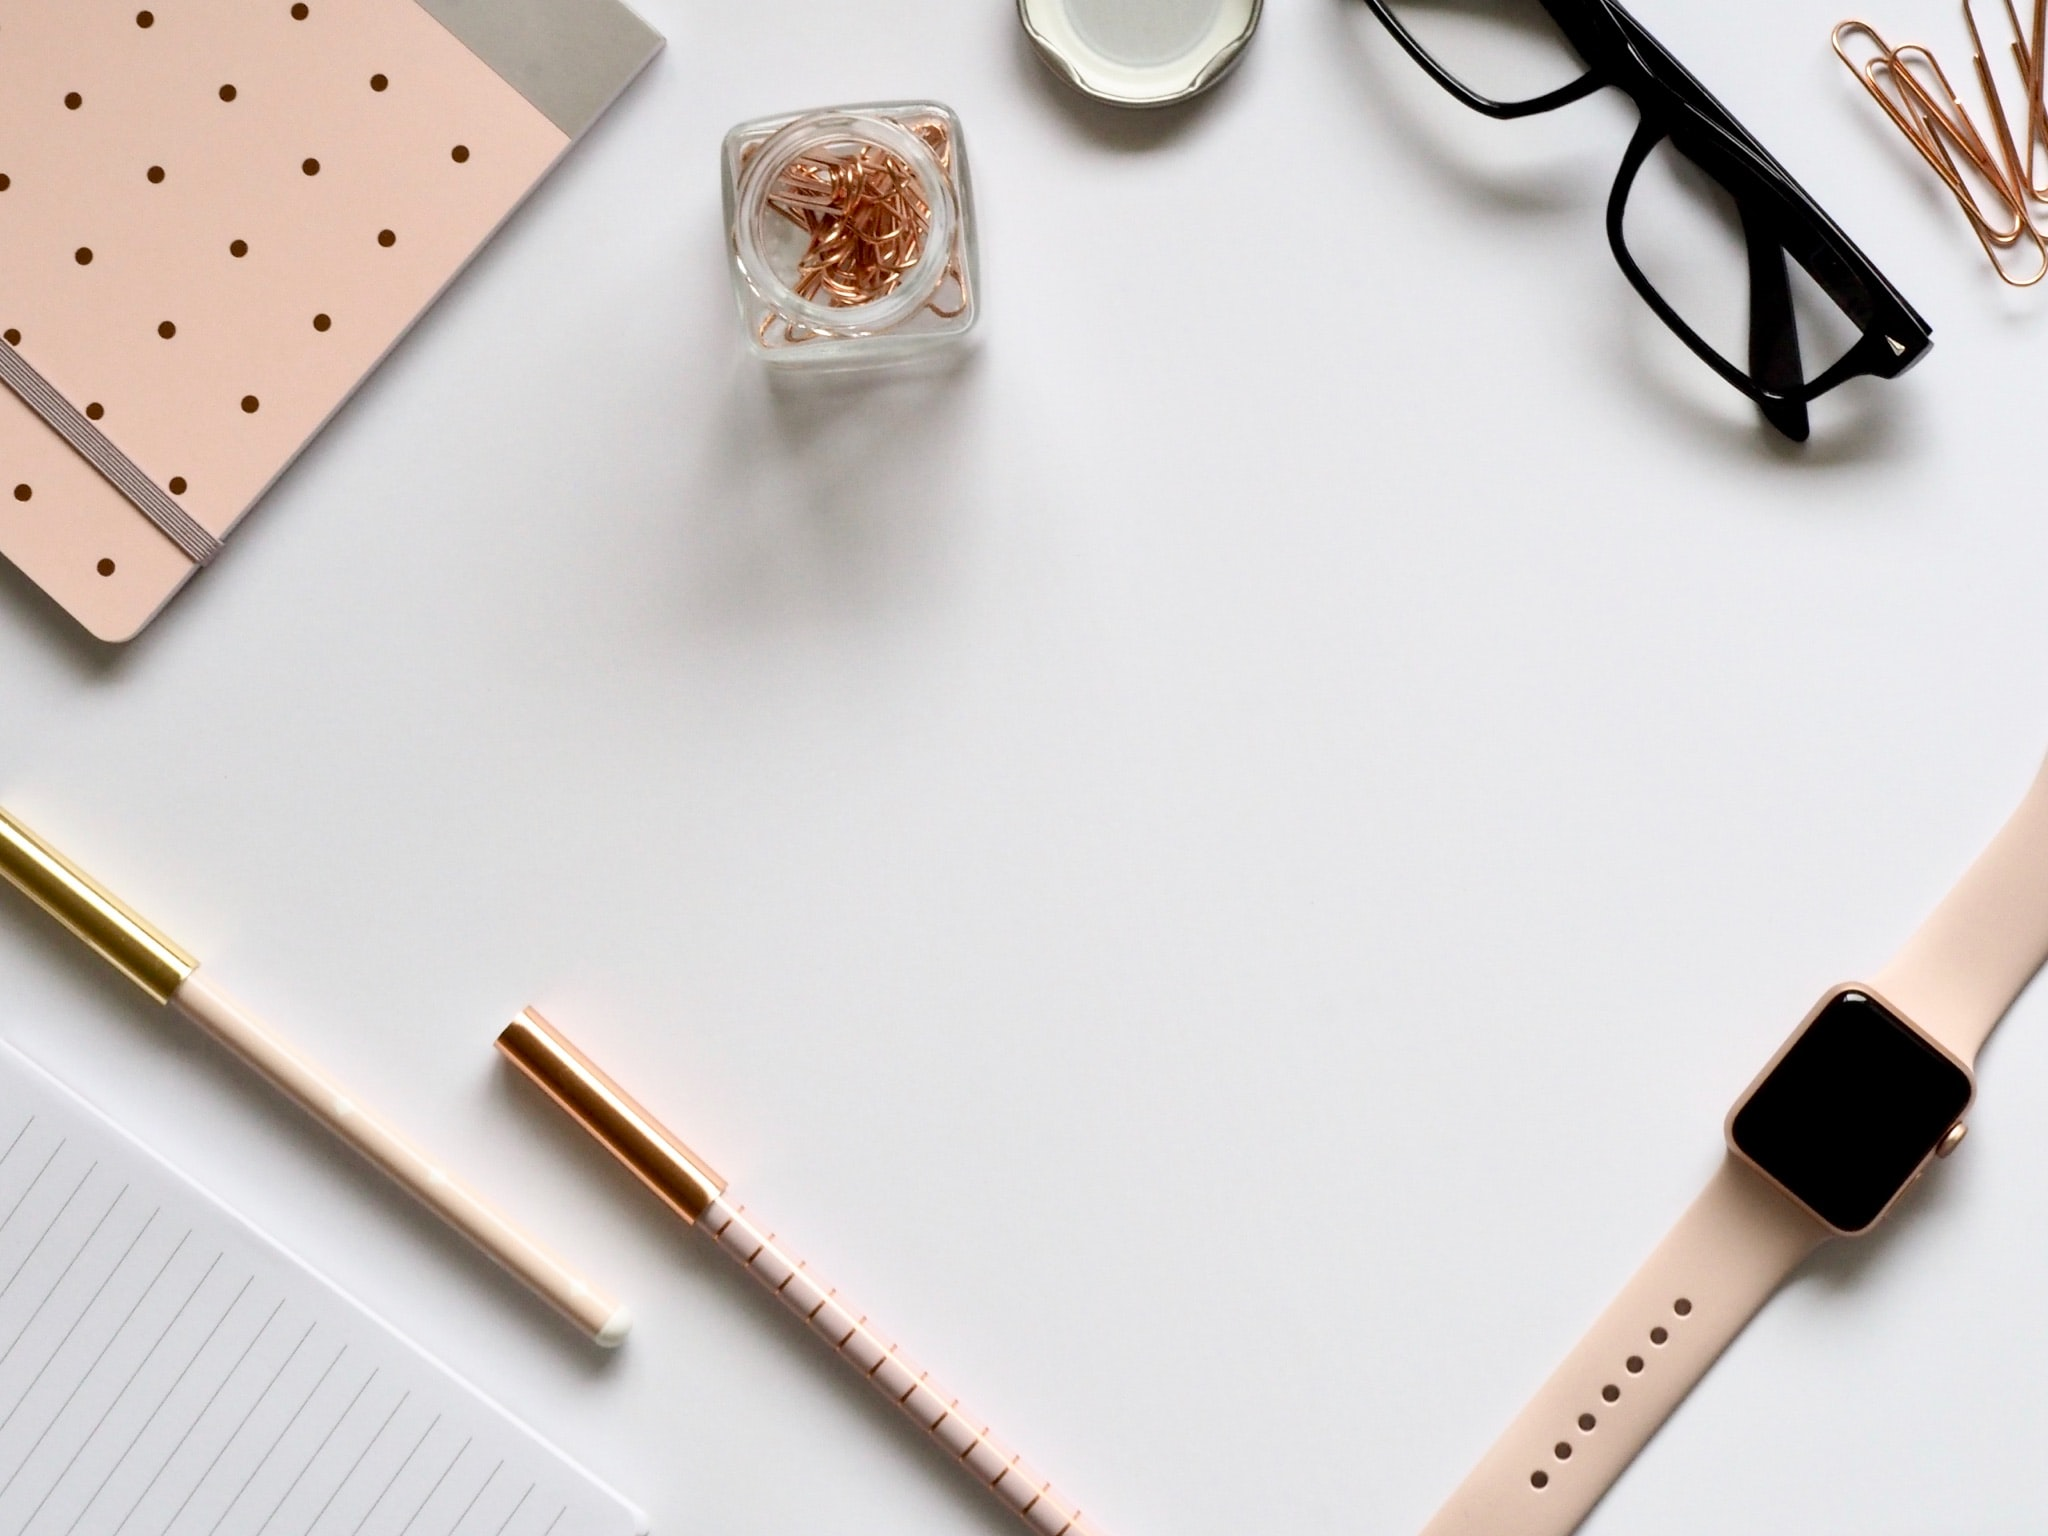 Desk with glasses and pens